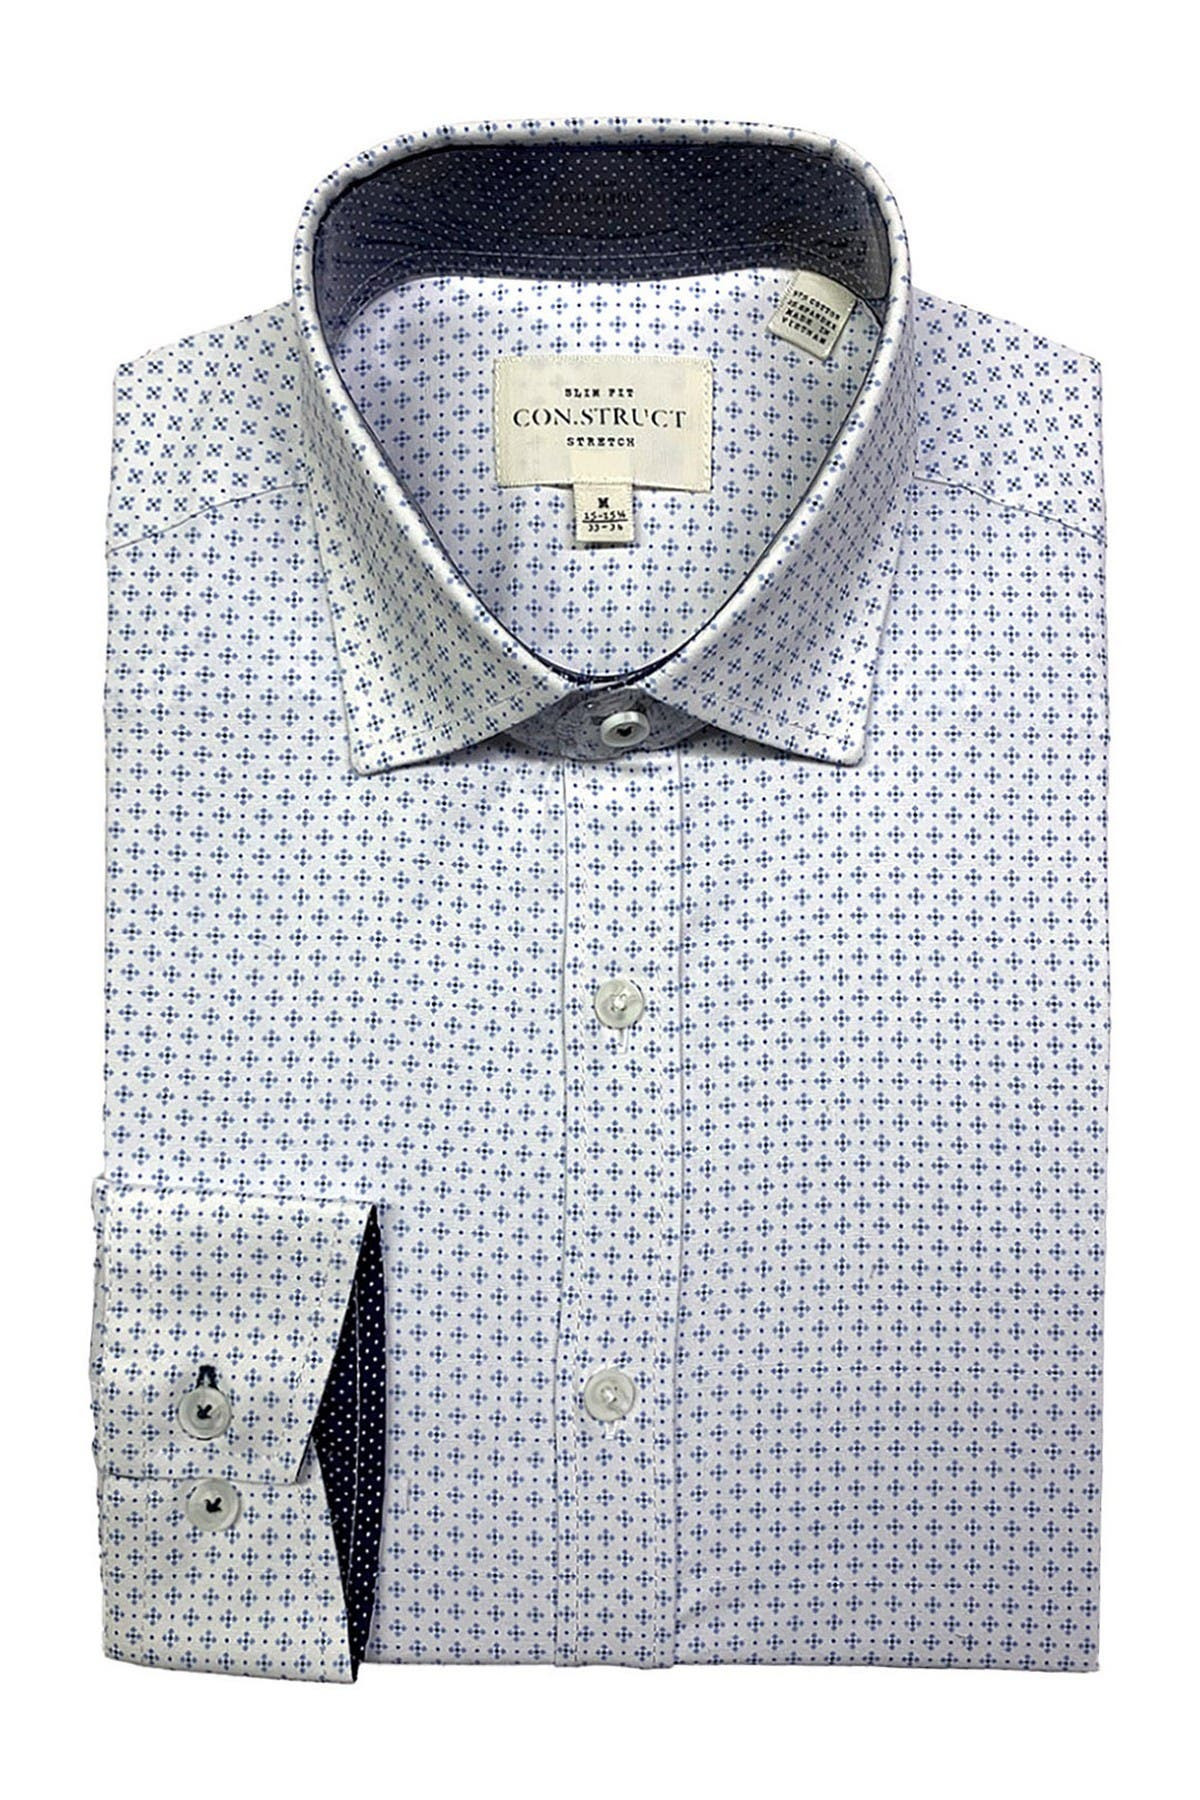 Image of CONSTRUCT Mini Square Print Slim Fit Dress Shirt